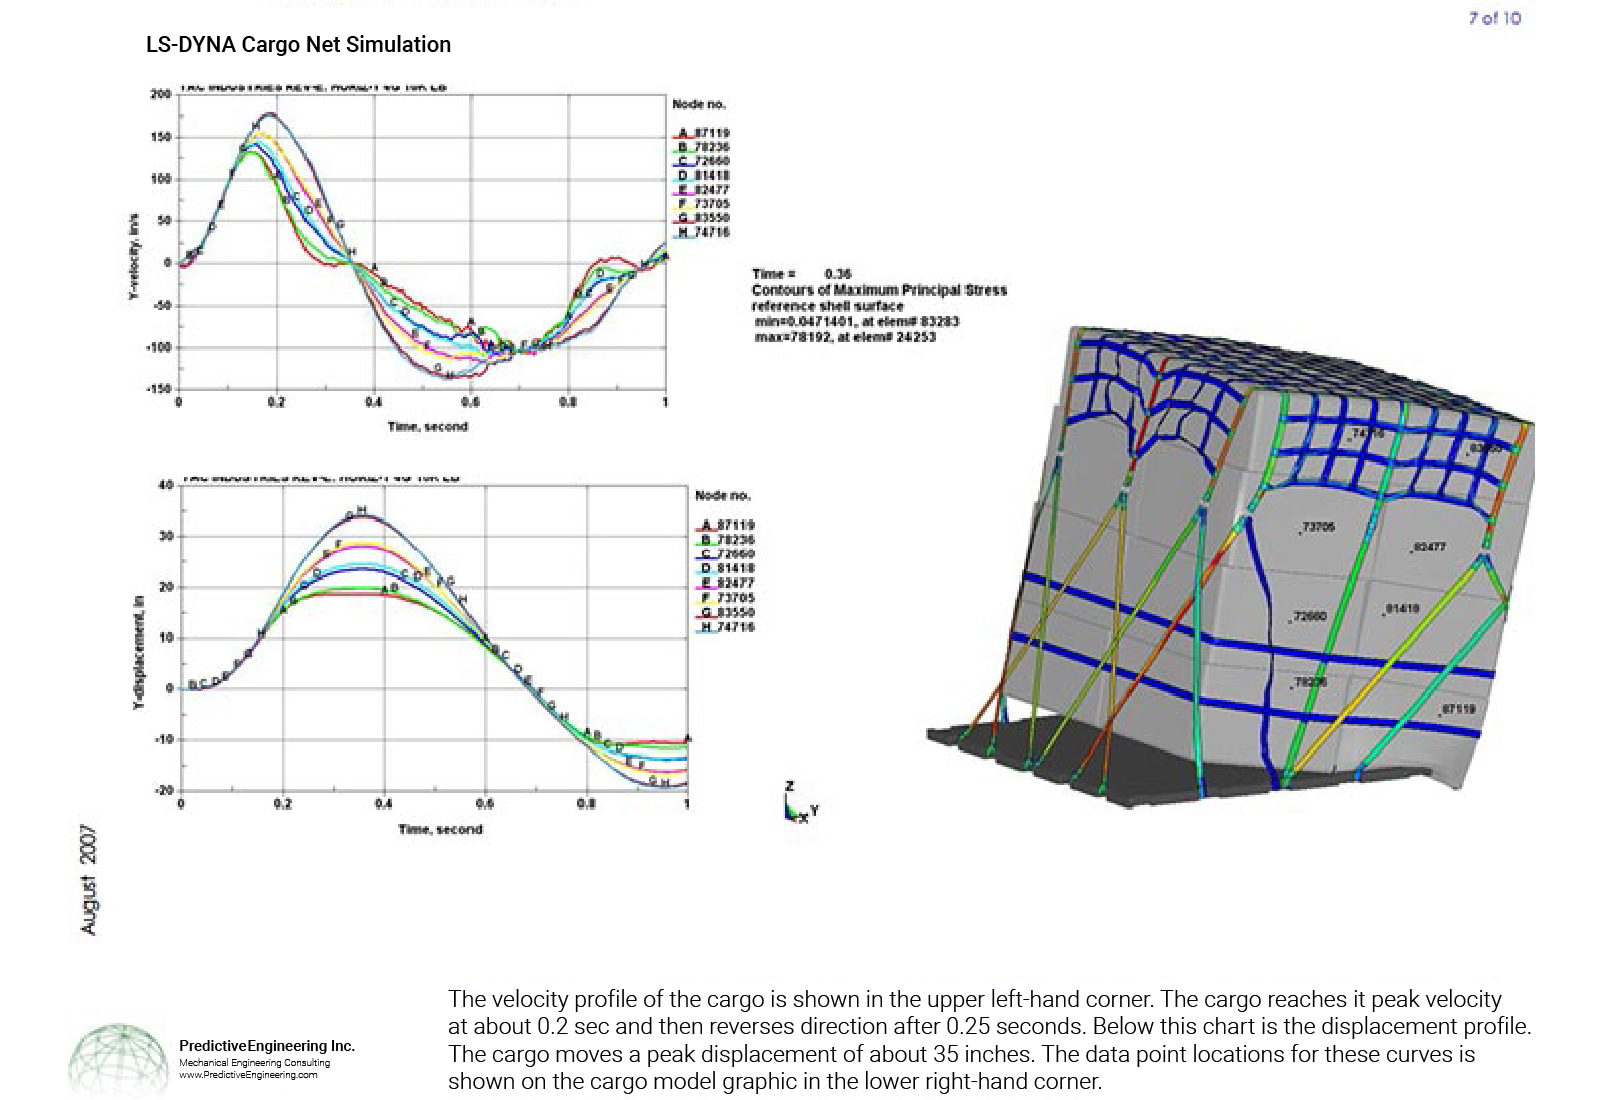 Verification of nonlinear FEA model of cargo net simulation under 9G airplane crash landing